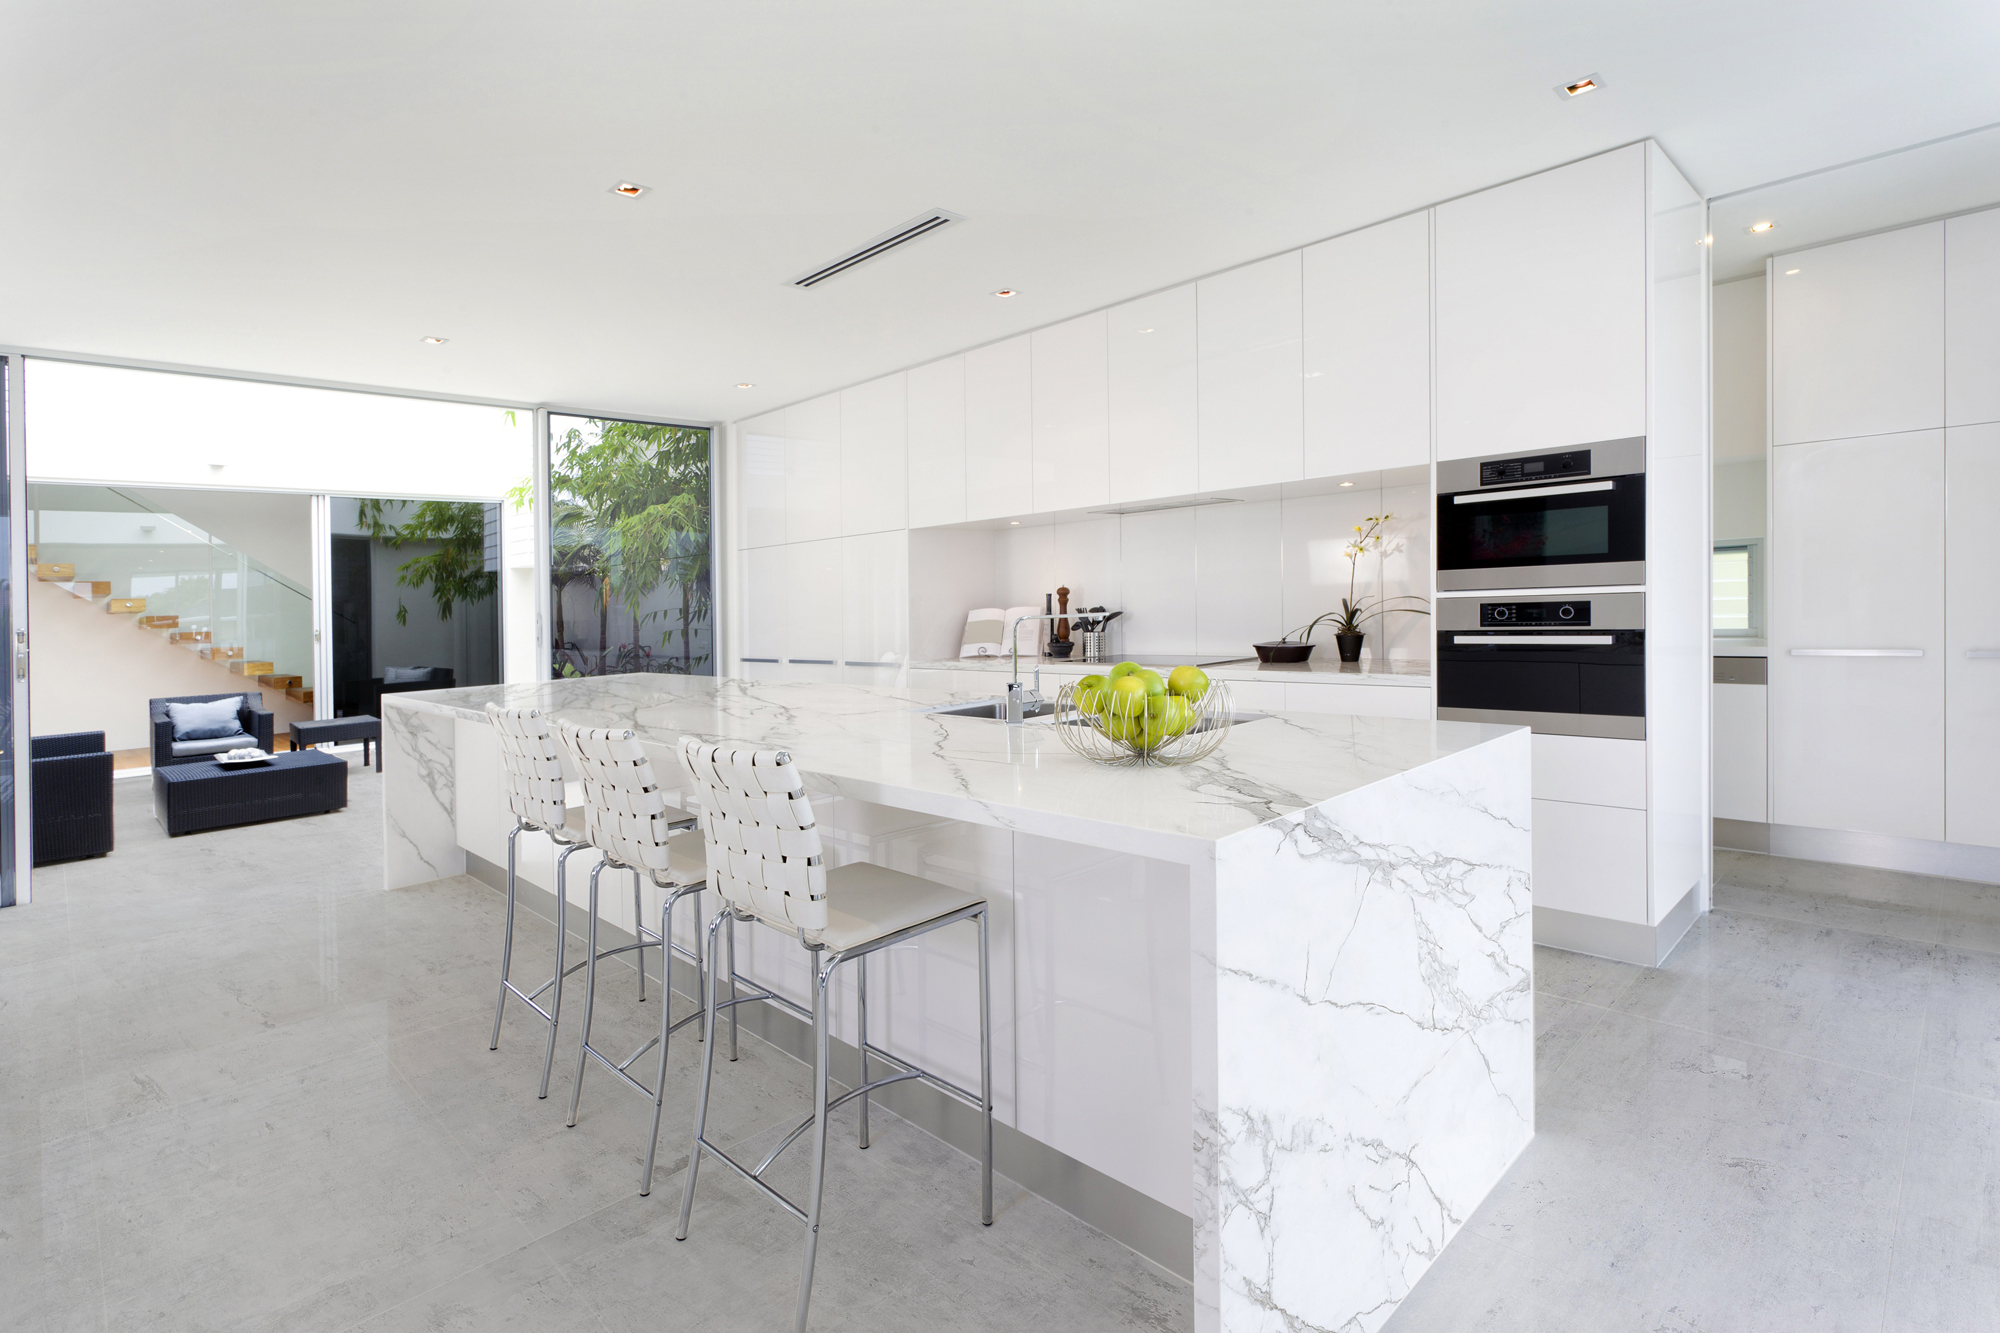 Neolith S Calacatta Classtone Brings The Look Of Marble Jlc Online Countertops Finishes And Surfaces Flooring Walls Kitchen Bath Interiors